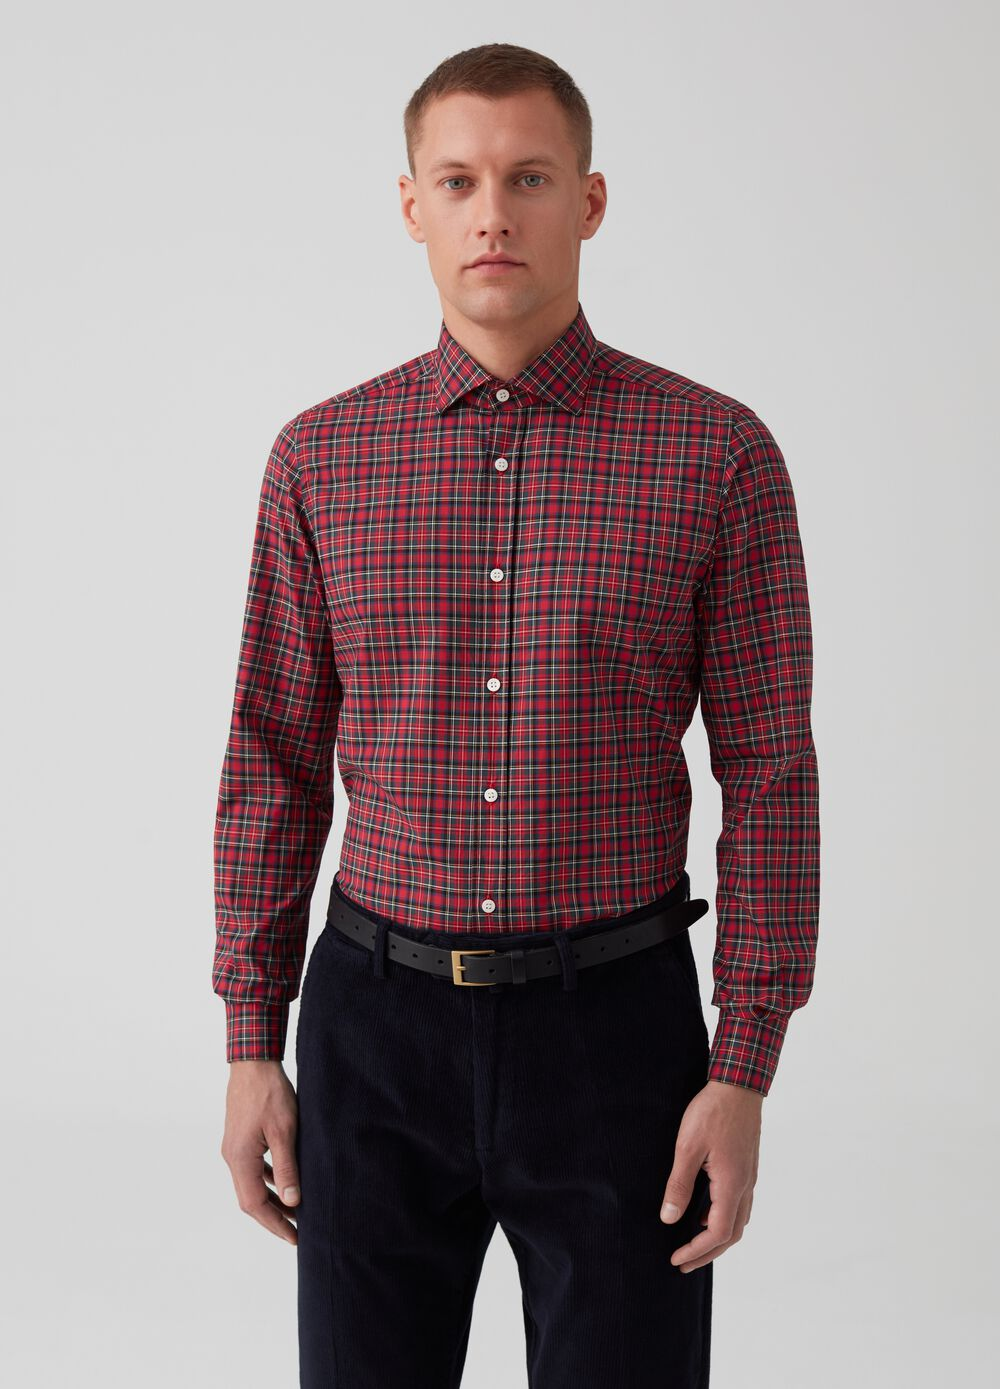 Rumford cotton shirt with check pattern